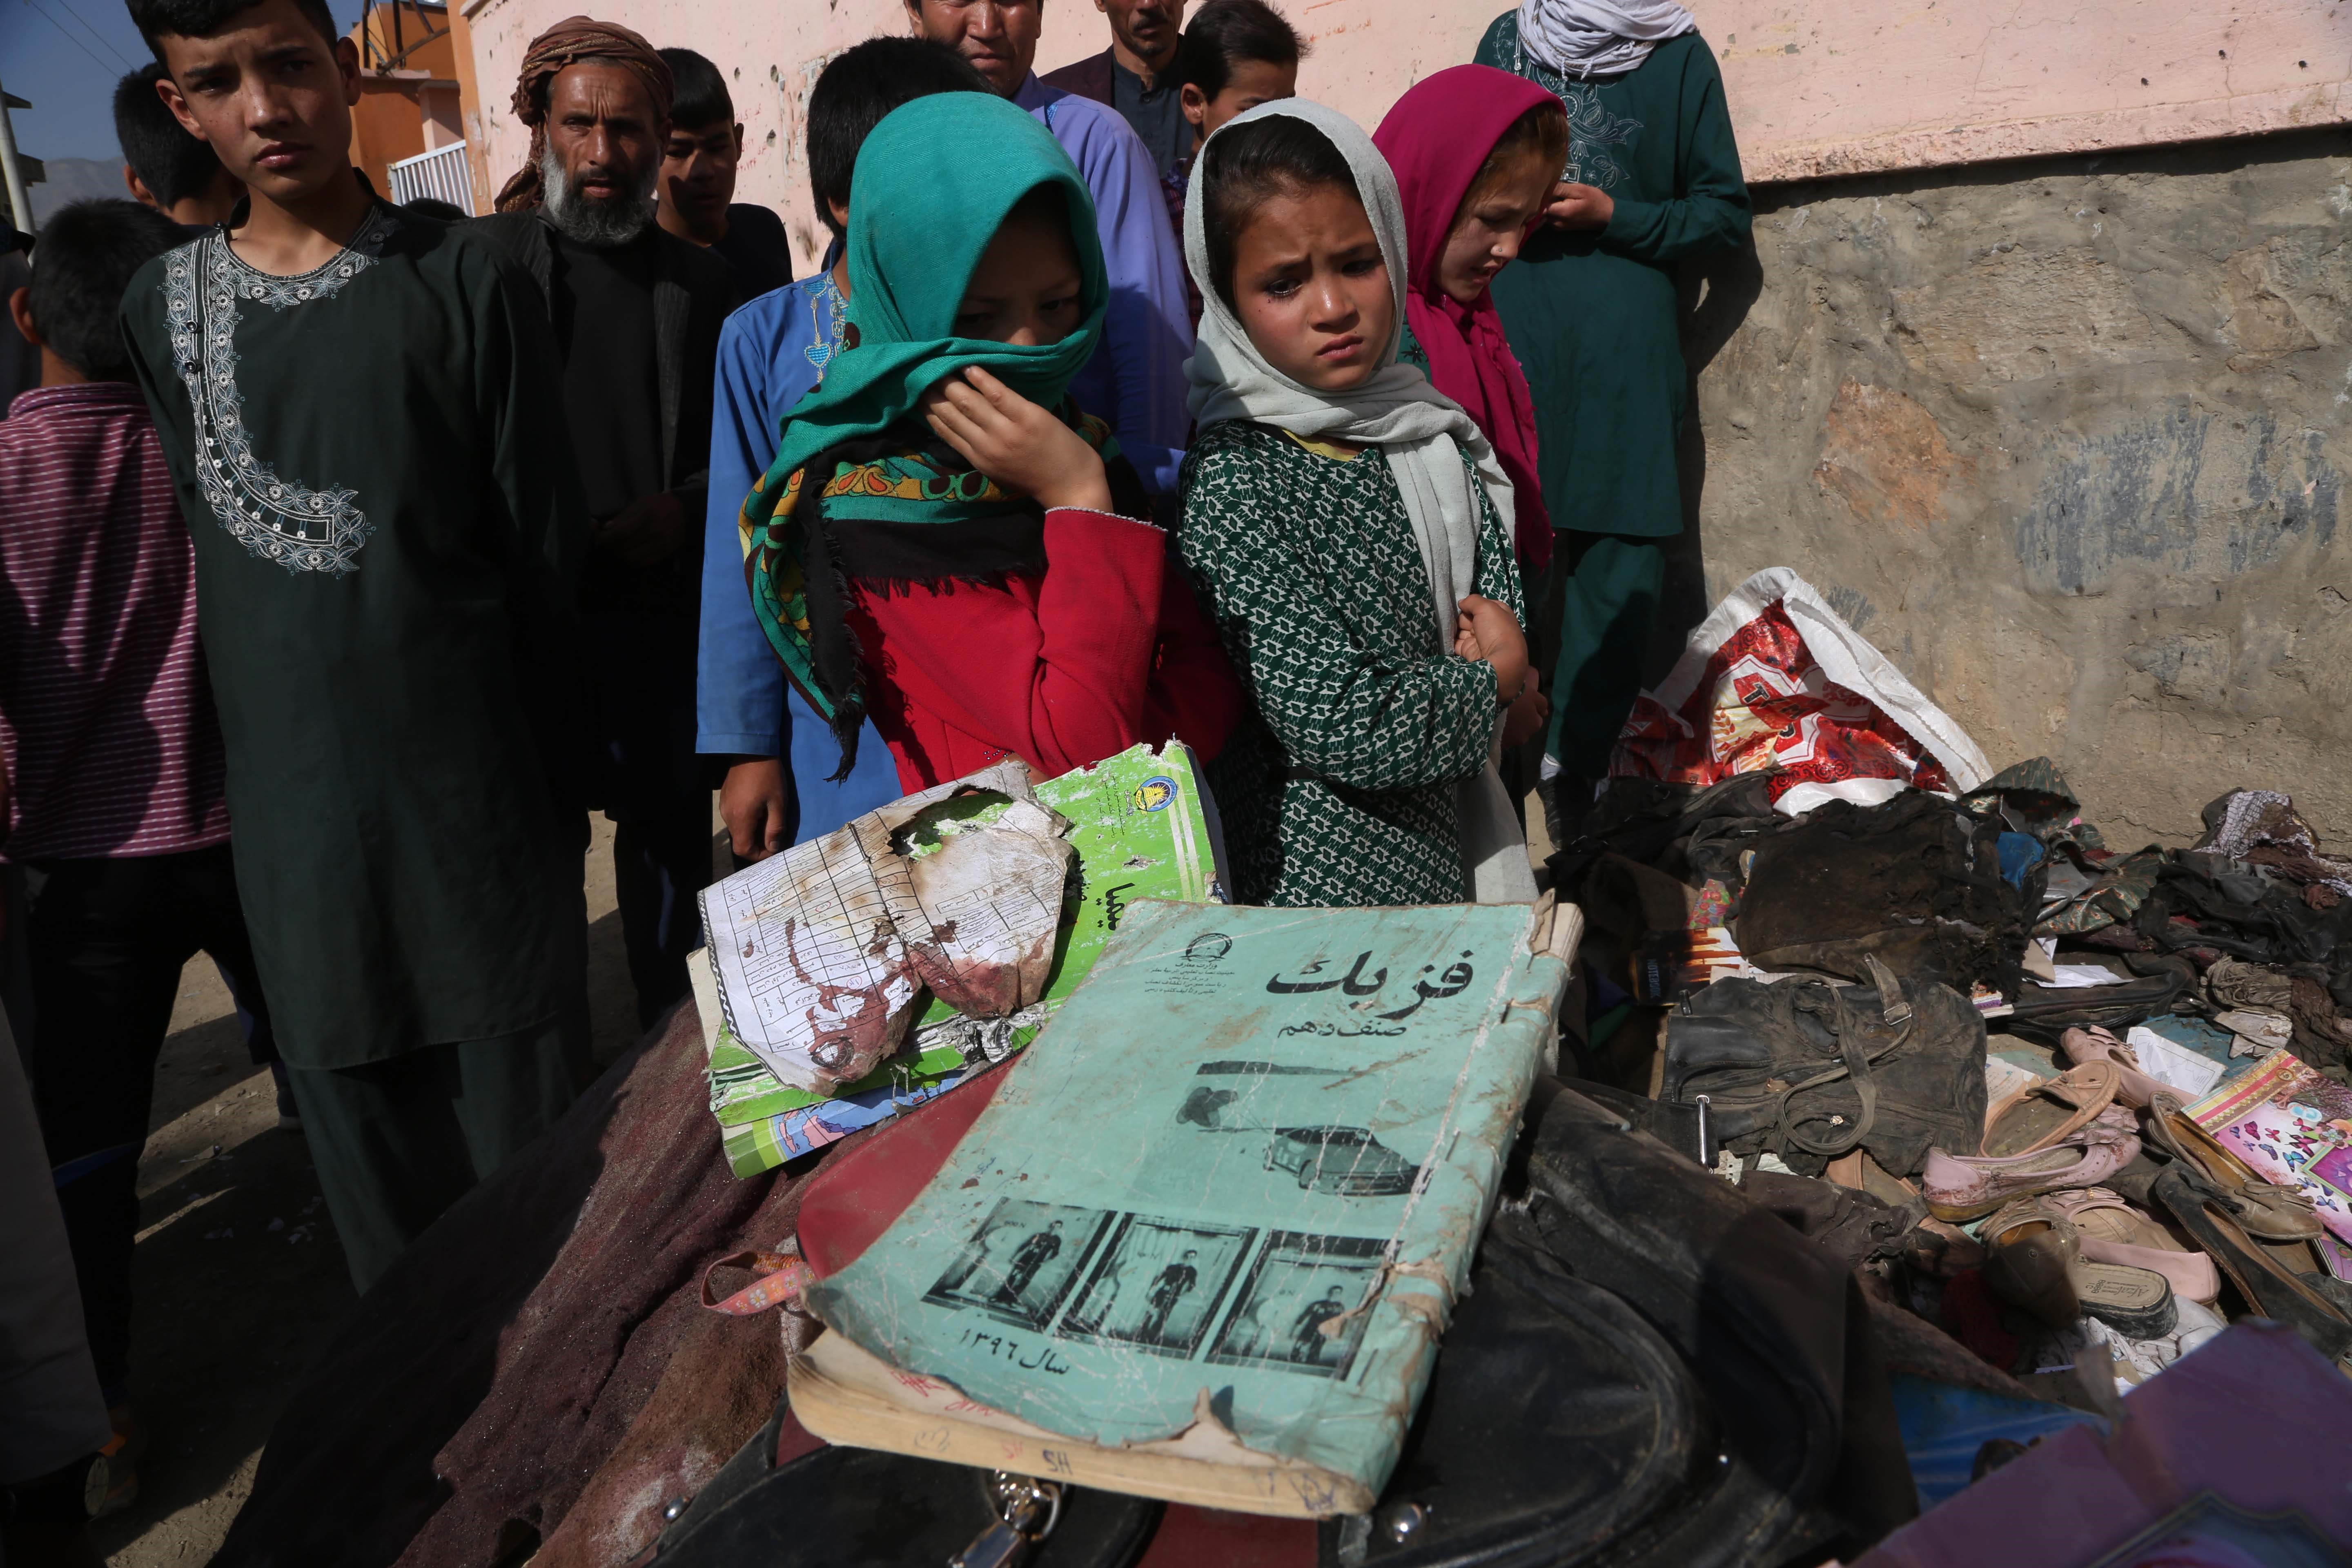 Books of students who were killed in a terror attack in Kabul on May 8, 2021. Most of the victims were school girls while many passers-by were also affected. Getty Images/Xinhua News Agency.